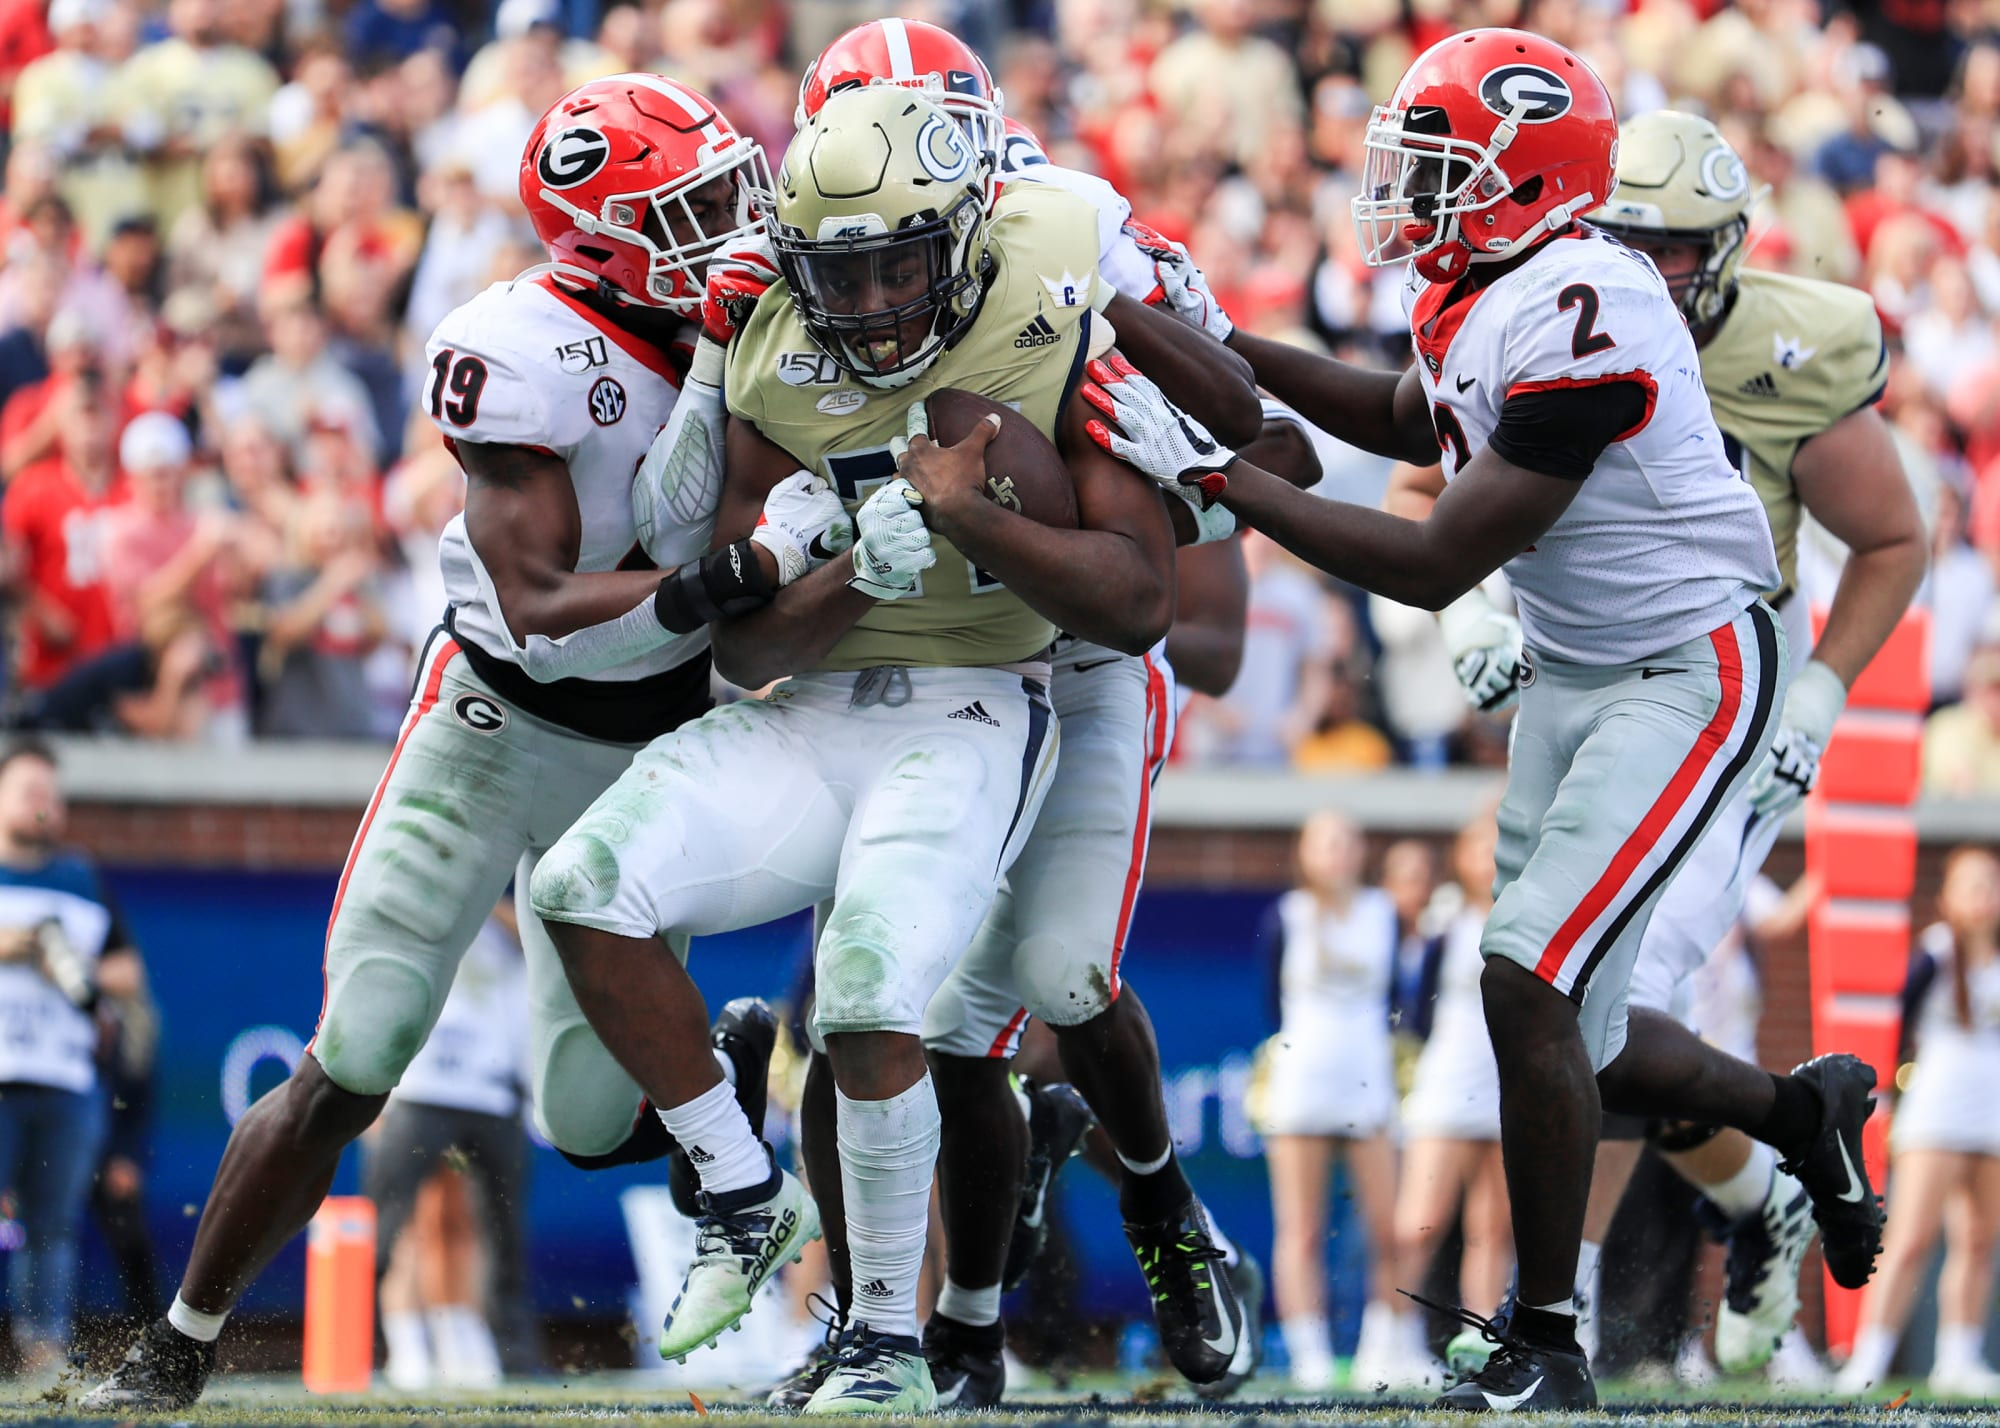 UGA football news: 'Clean, Old-Fashioned Hate' may have to take a year off